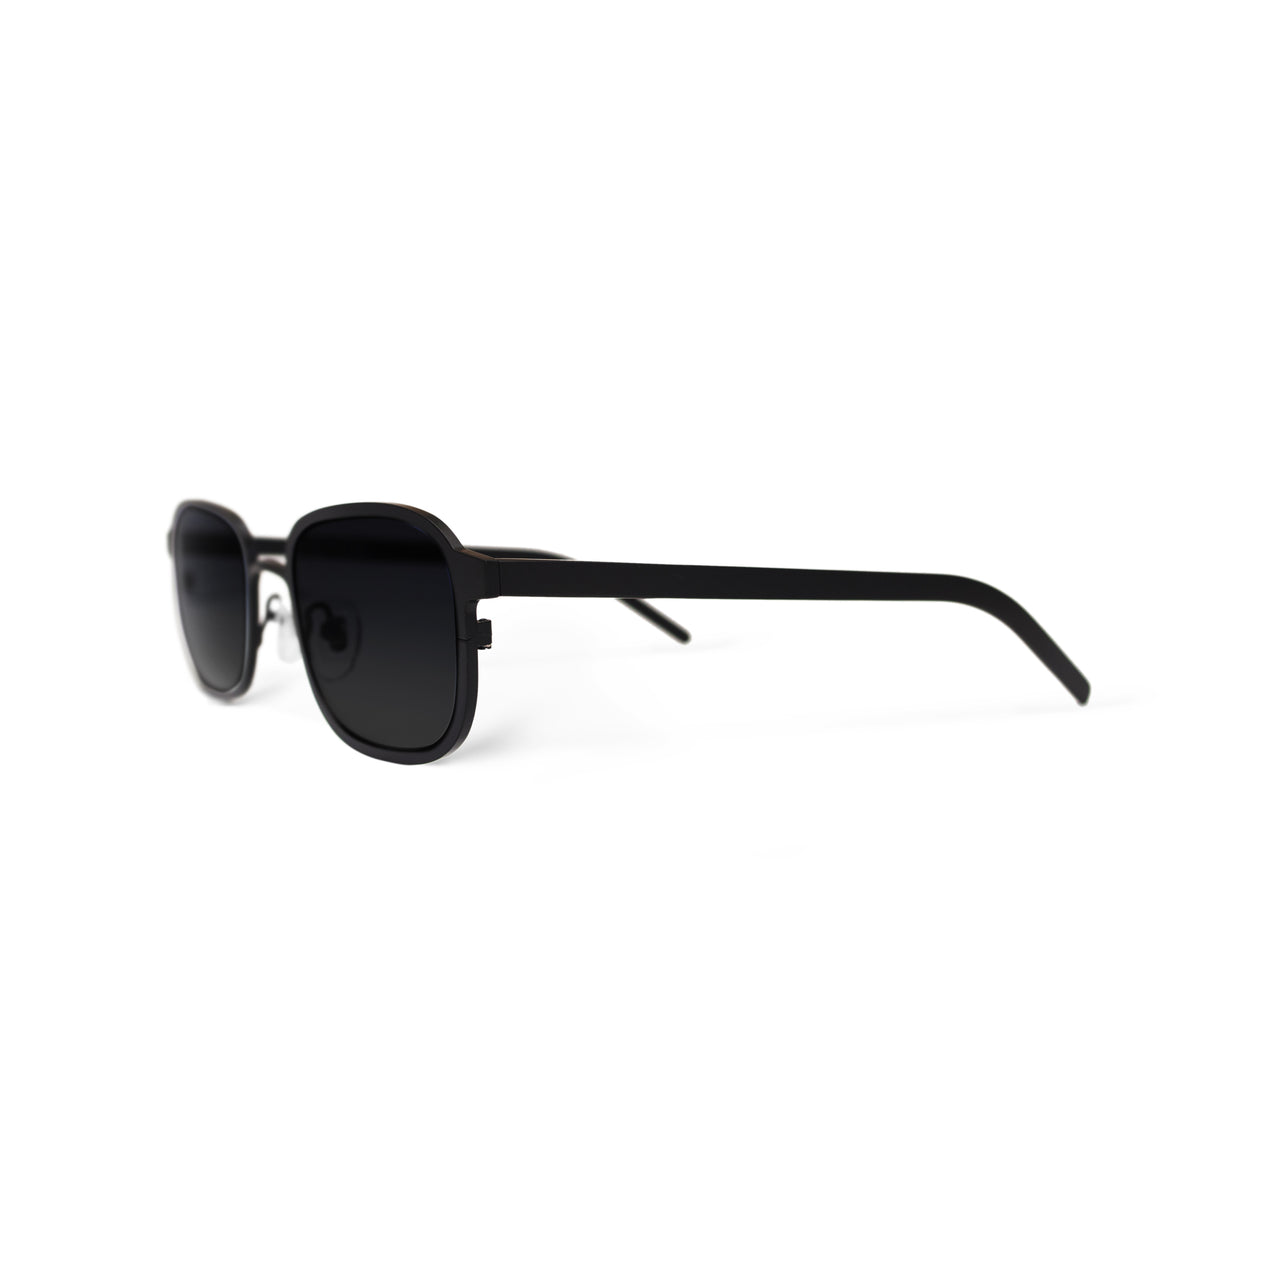 Metal. Gloss Black. Black Lens. - BLYSZAK eyewear eyewear - eyewear, optical, sunglasses